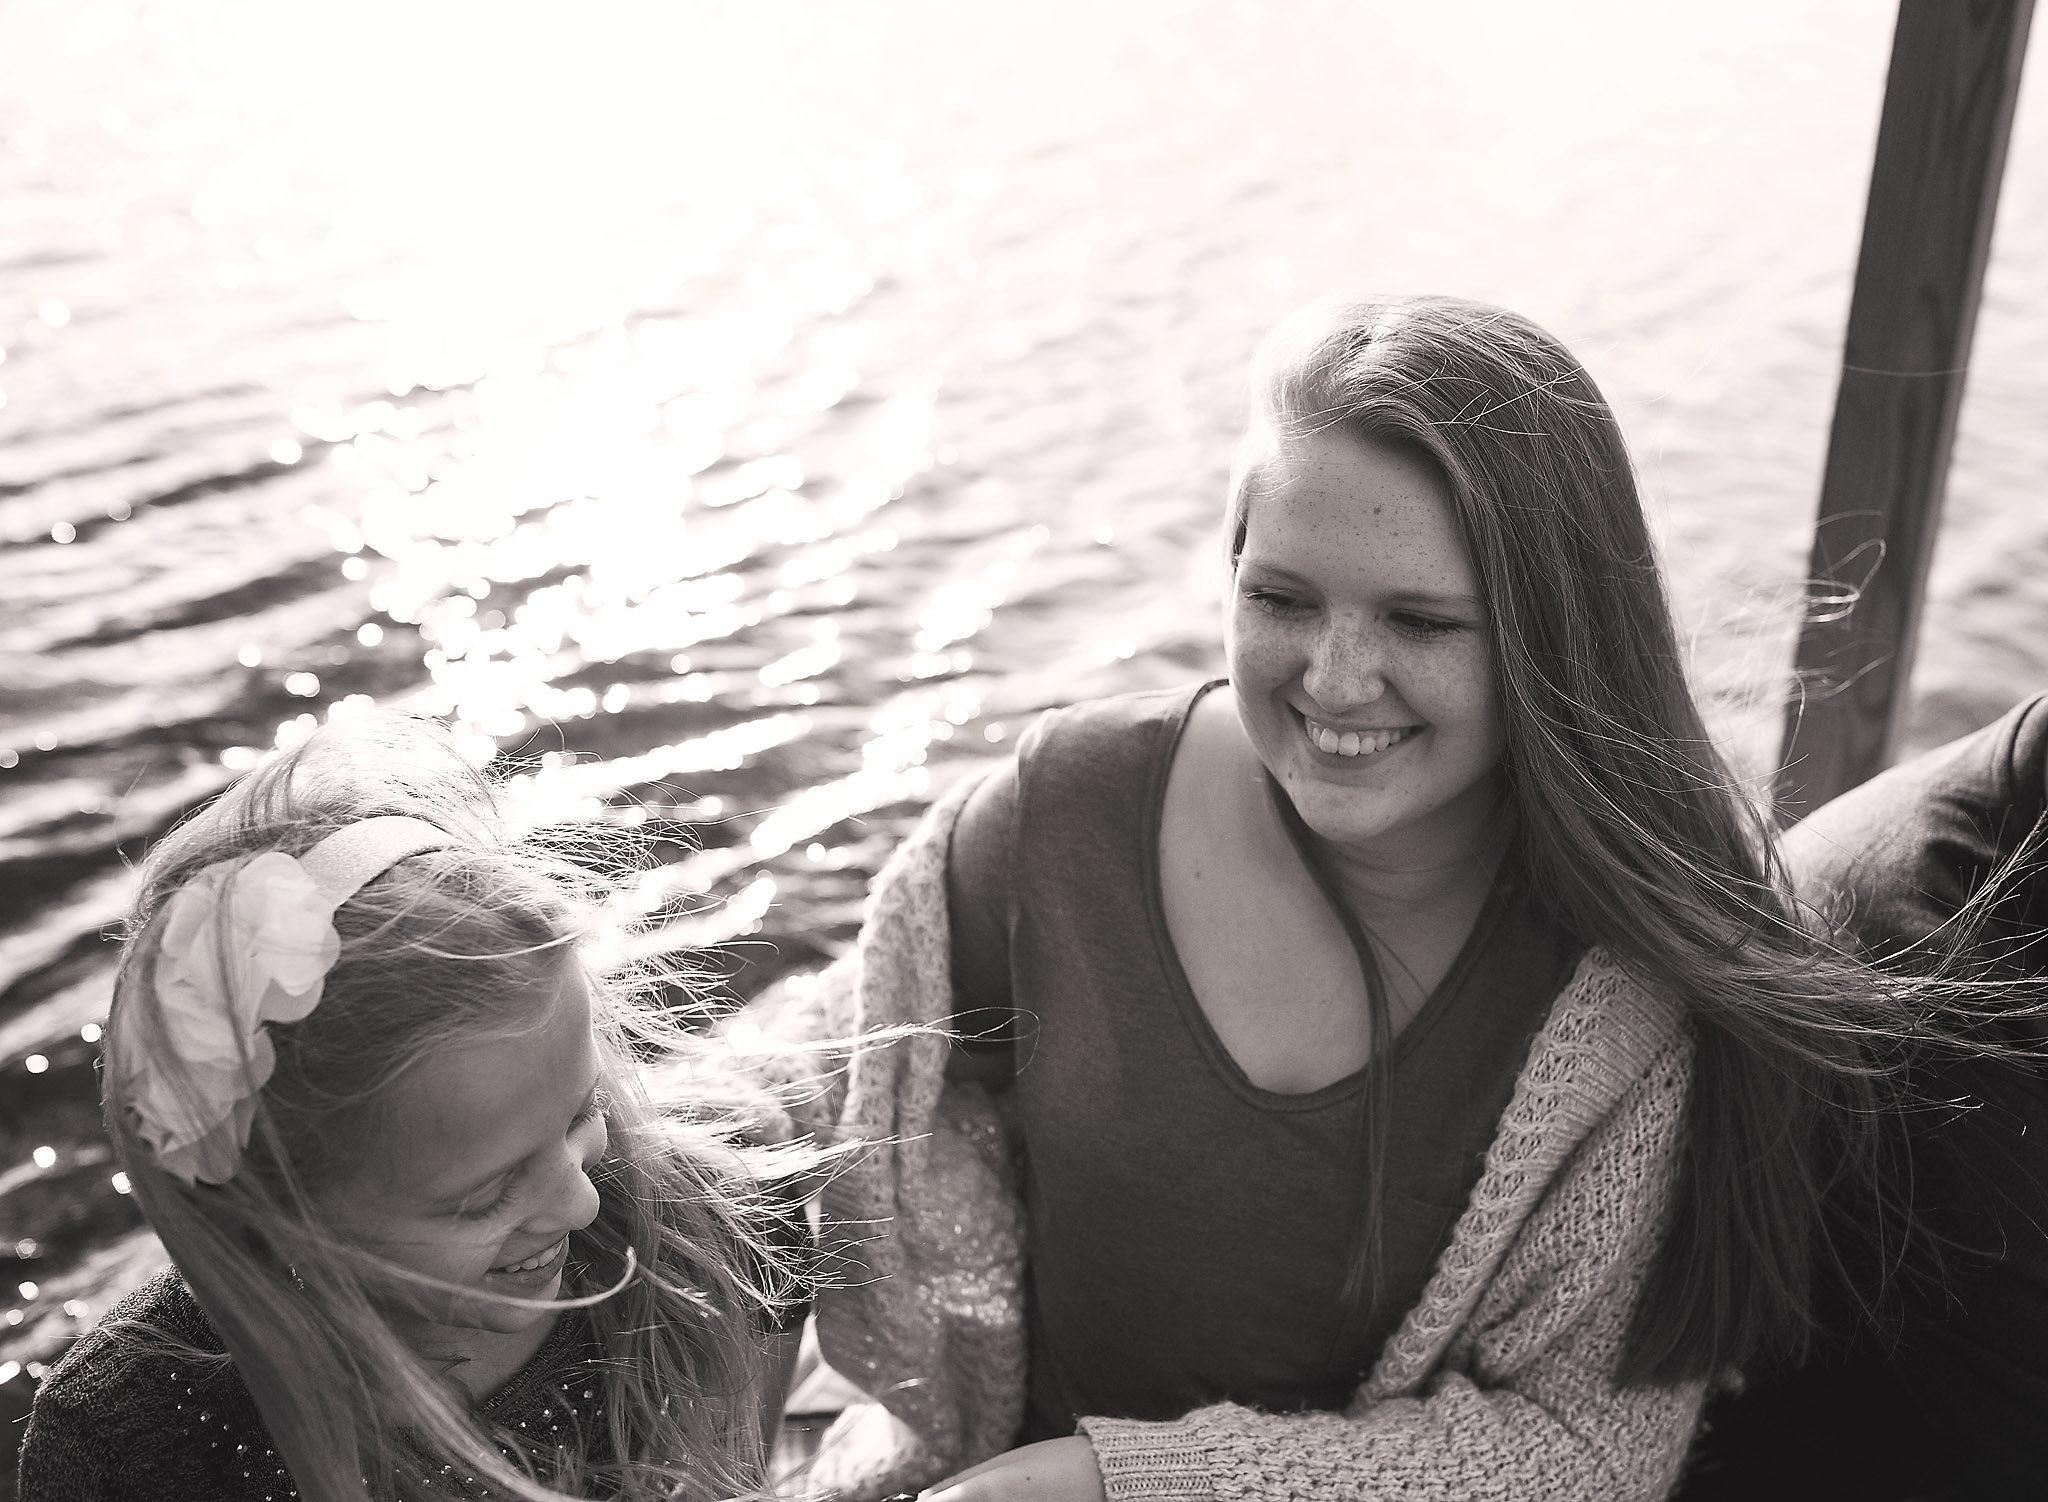 Teenage girl and her younger sister sitting on a dock along the water smiling at each other with their hair gently flowing in the wind.